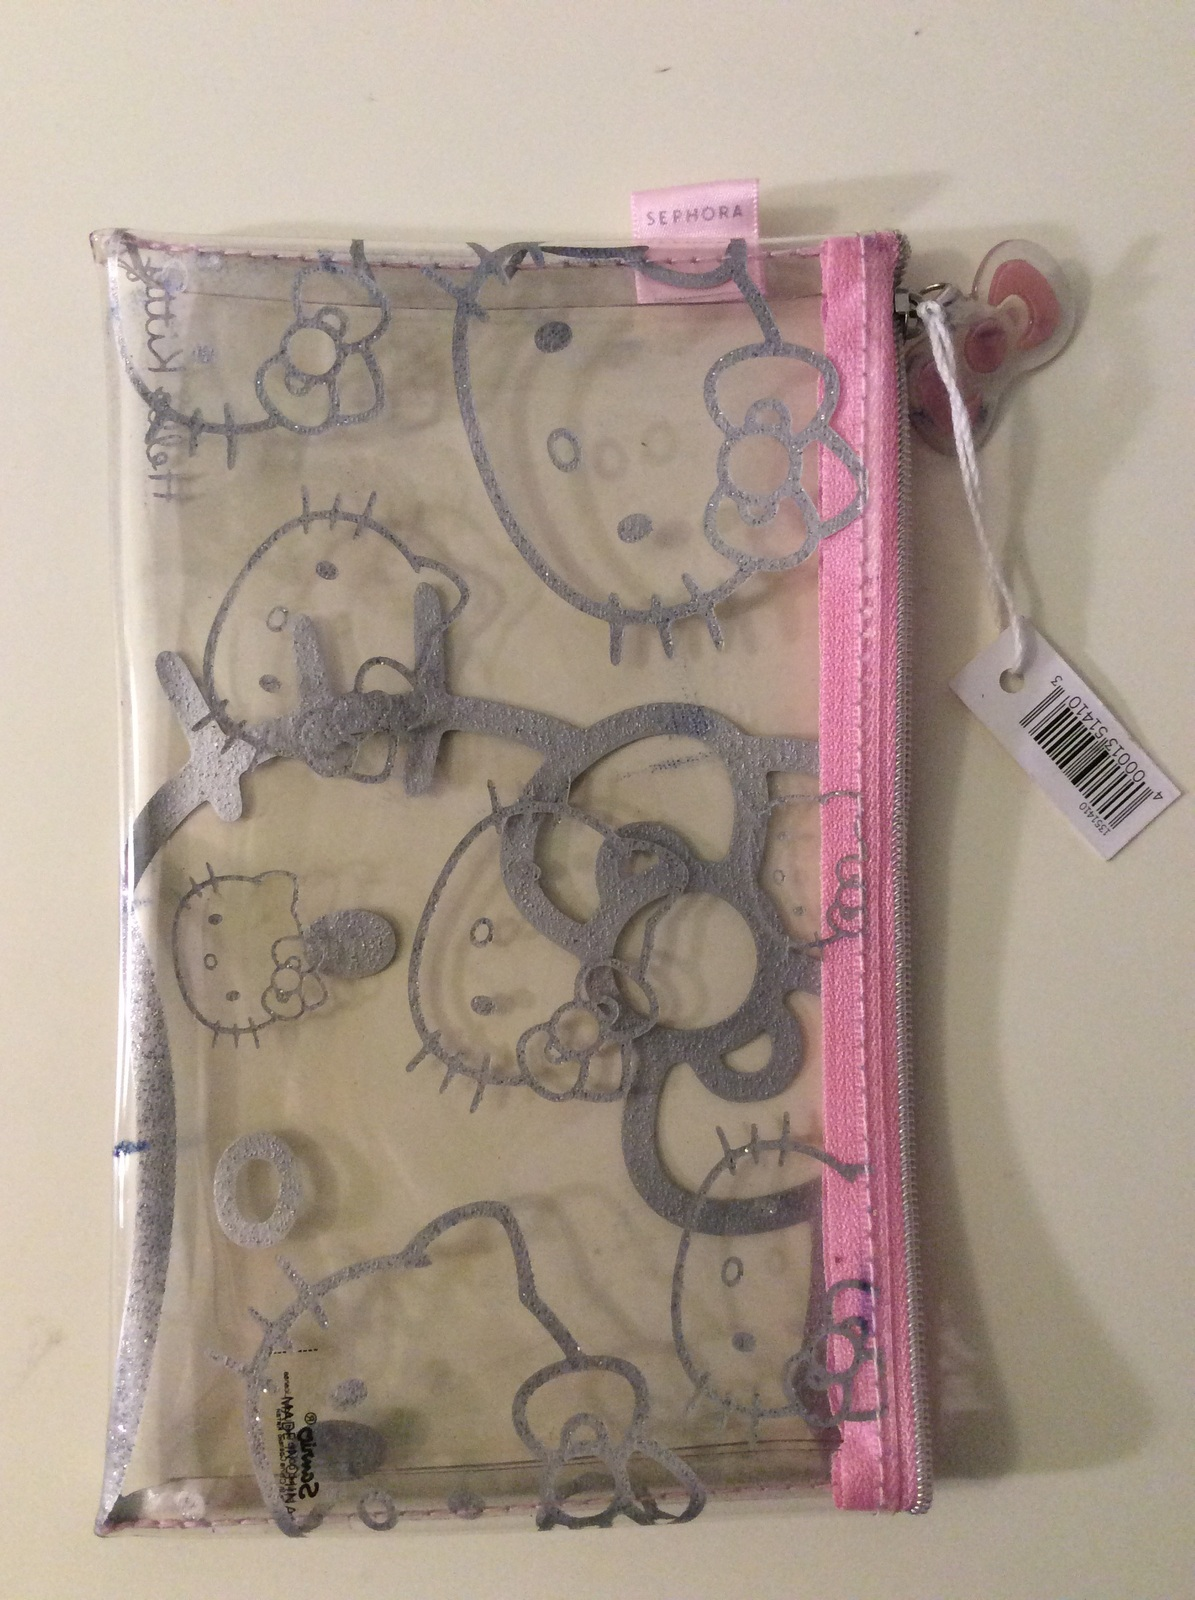 a36264fe1dc8 Image. Image. Previous. Hello Kitty Clear Plastic Sephora Cosmetic Bag · Hello  Kitty Clear Plastic ...